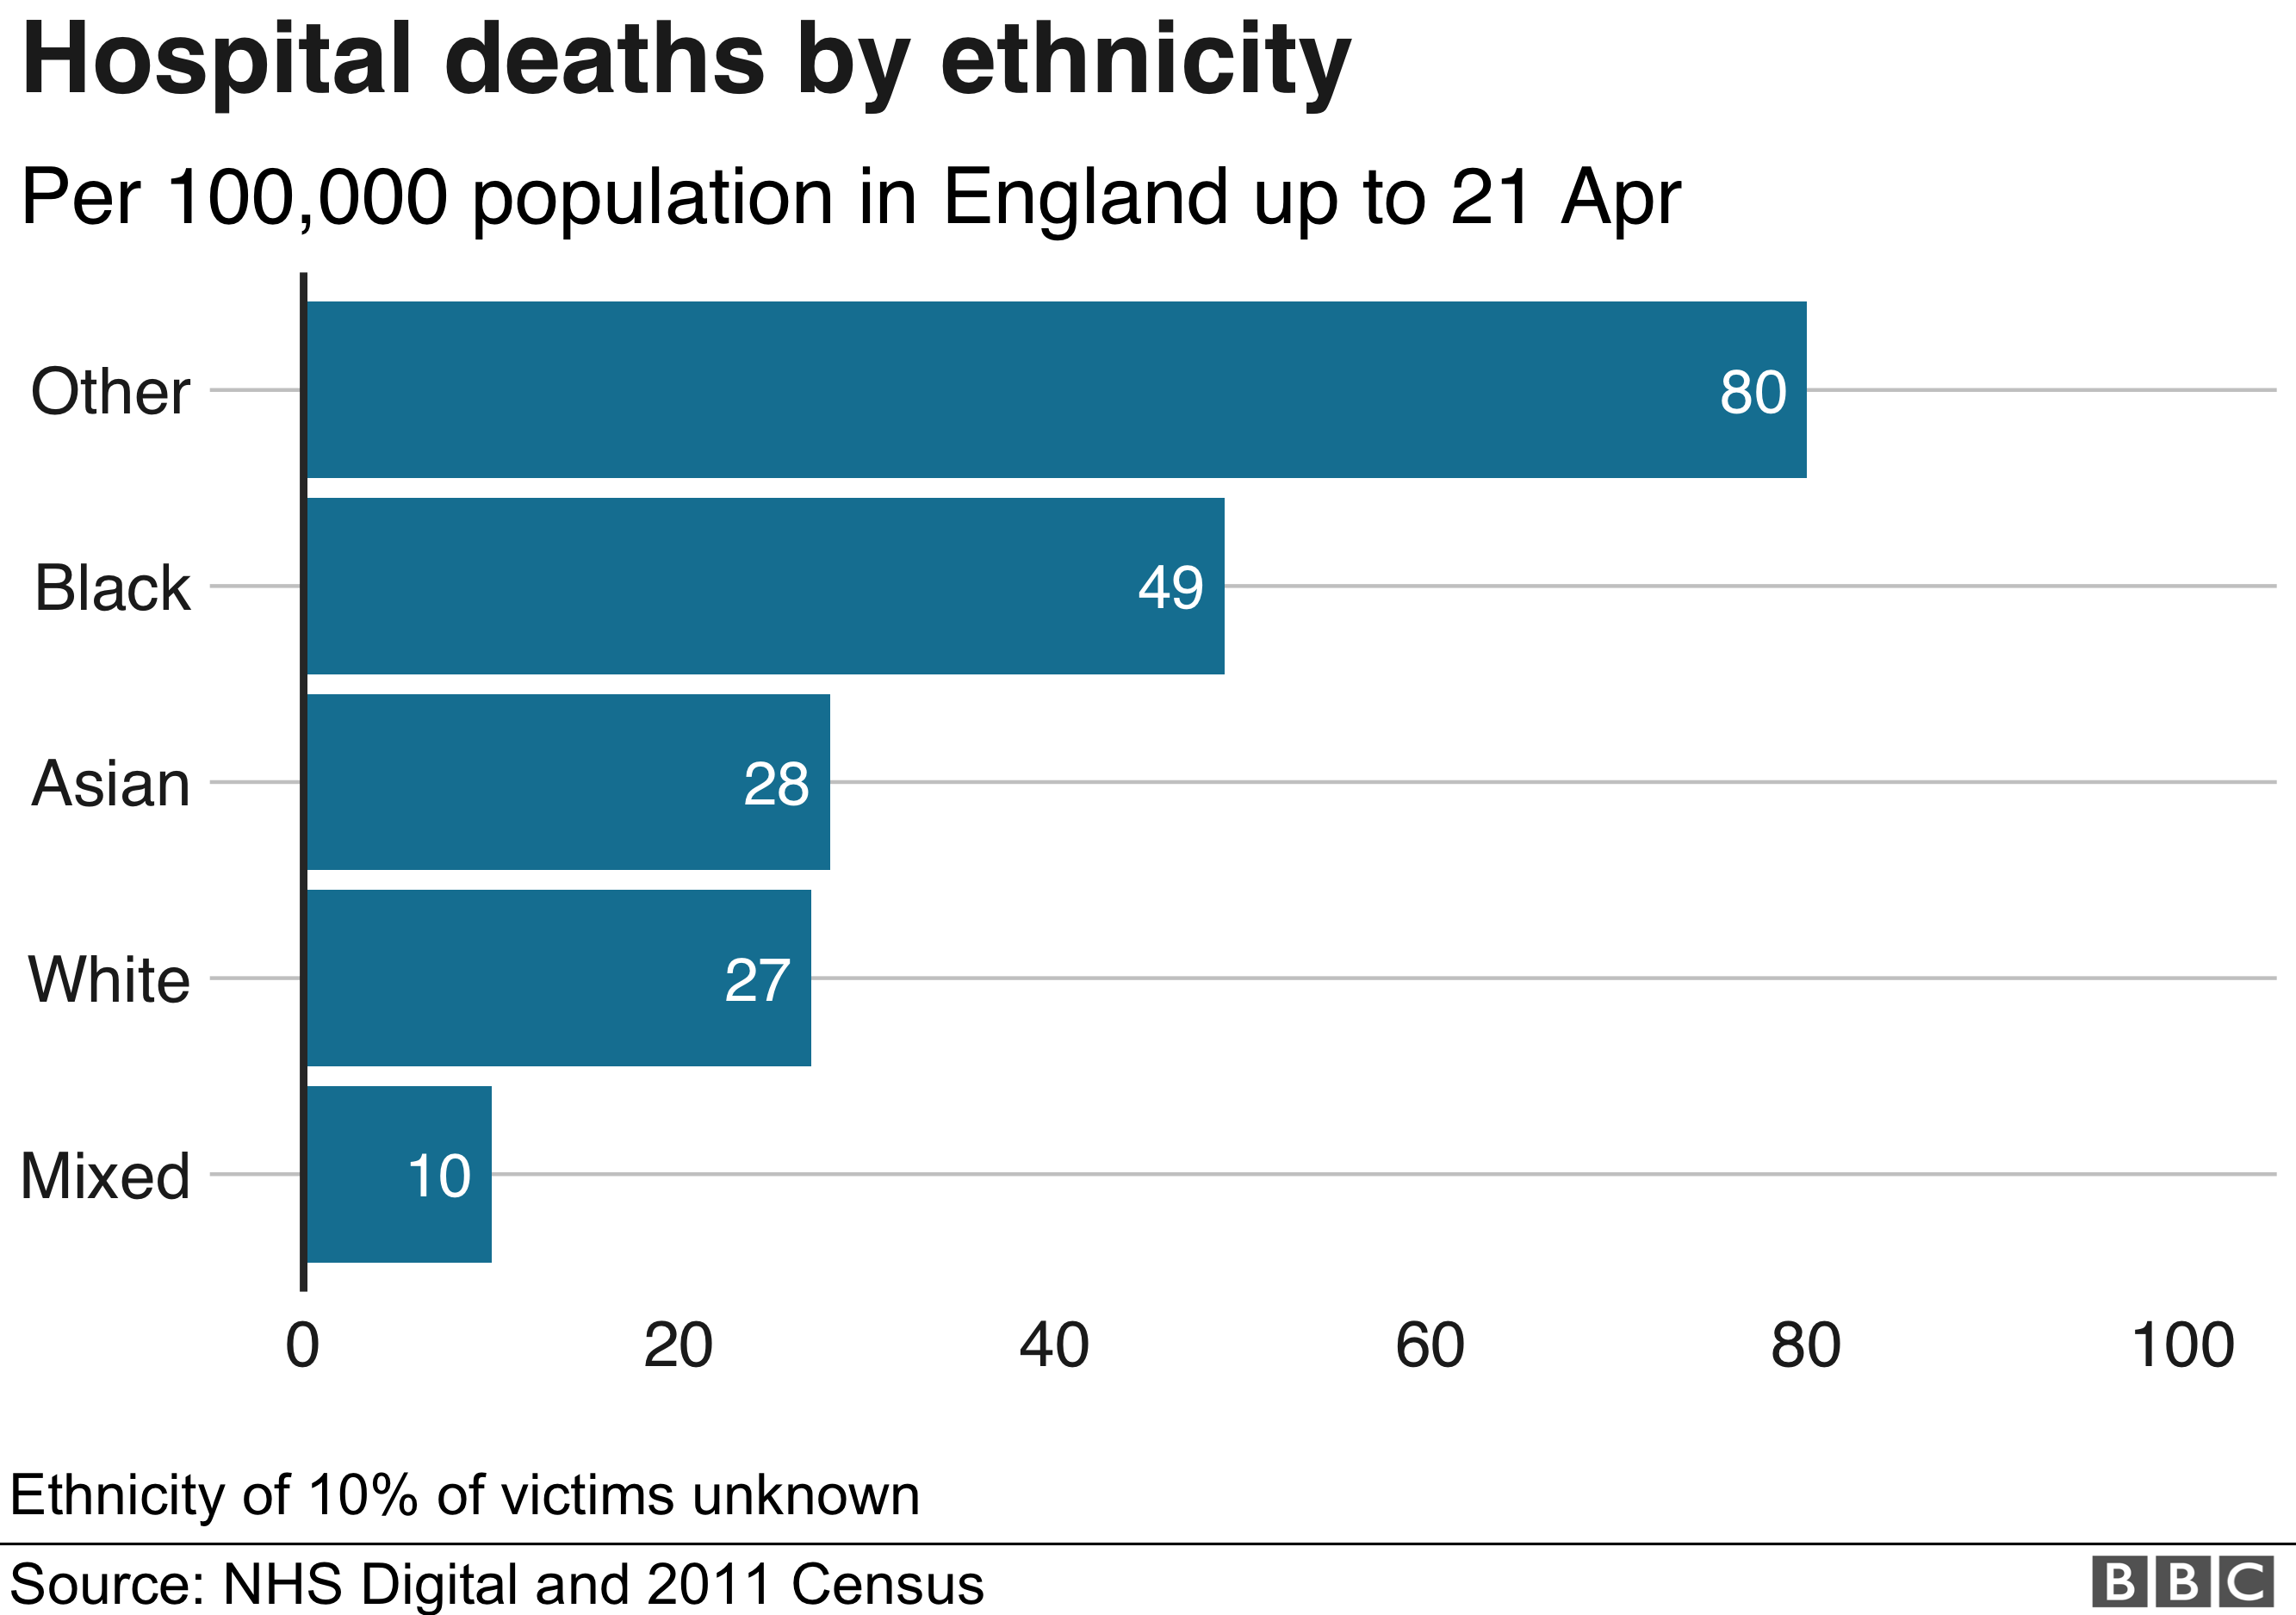 Chart showing ethnicity of BAME deaths